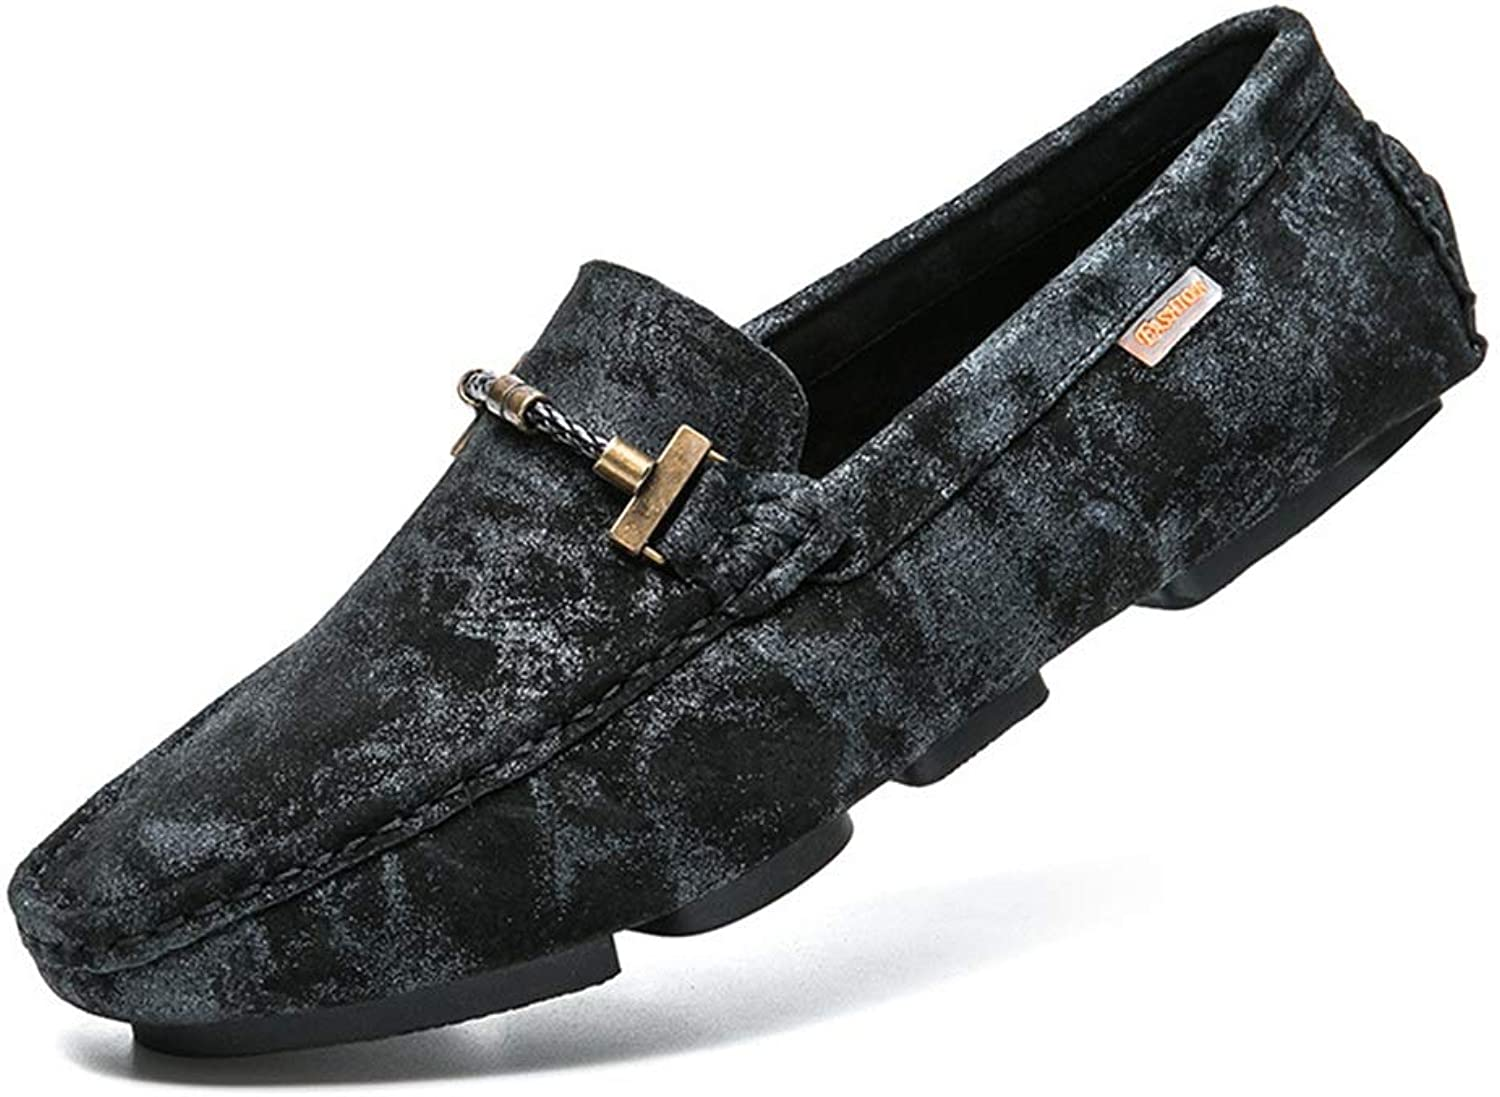 WWJDXZ Men's Classic Original Suede Leather Penny Loafers Comfort Low Cut shoes Driving shoes Slip-on Flats Moccasin Slippers Casual